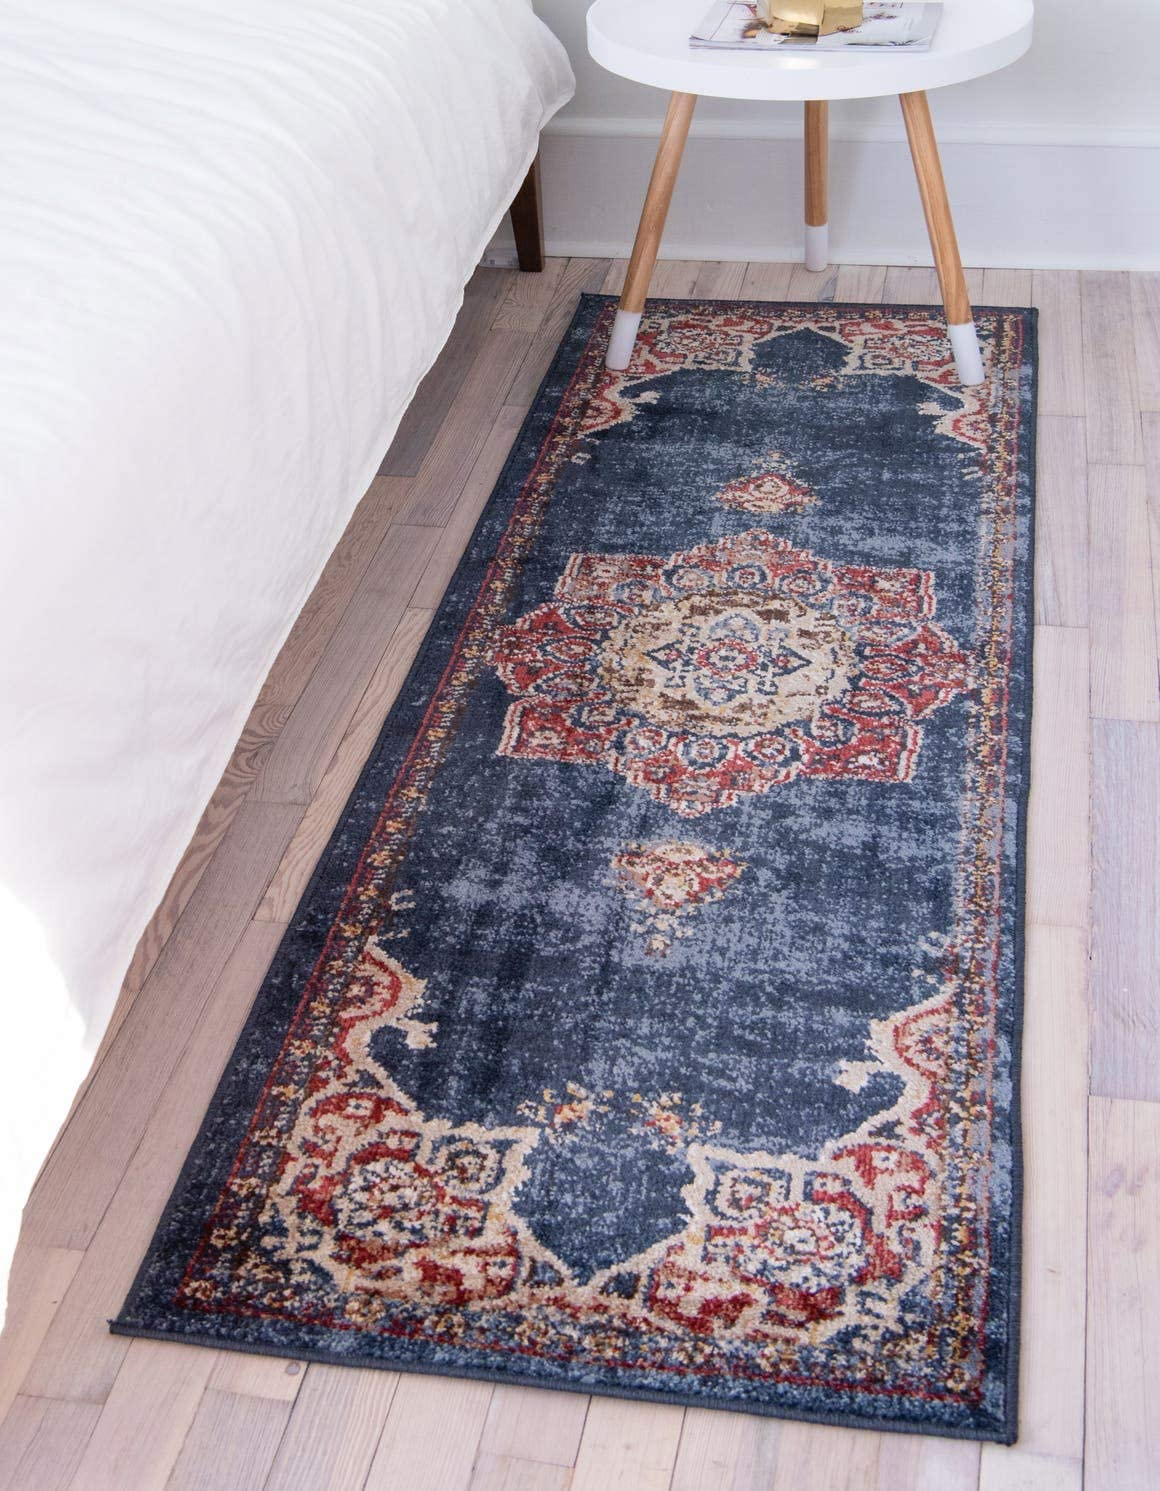 Unique Loom Utopia Collection Traditional Medallion Vintage Warm Tones Dark Blue Runner Rug 2 0 x 6 0